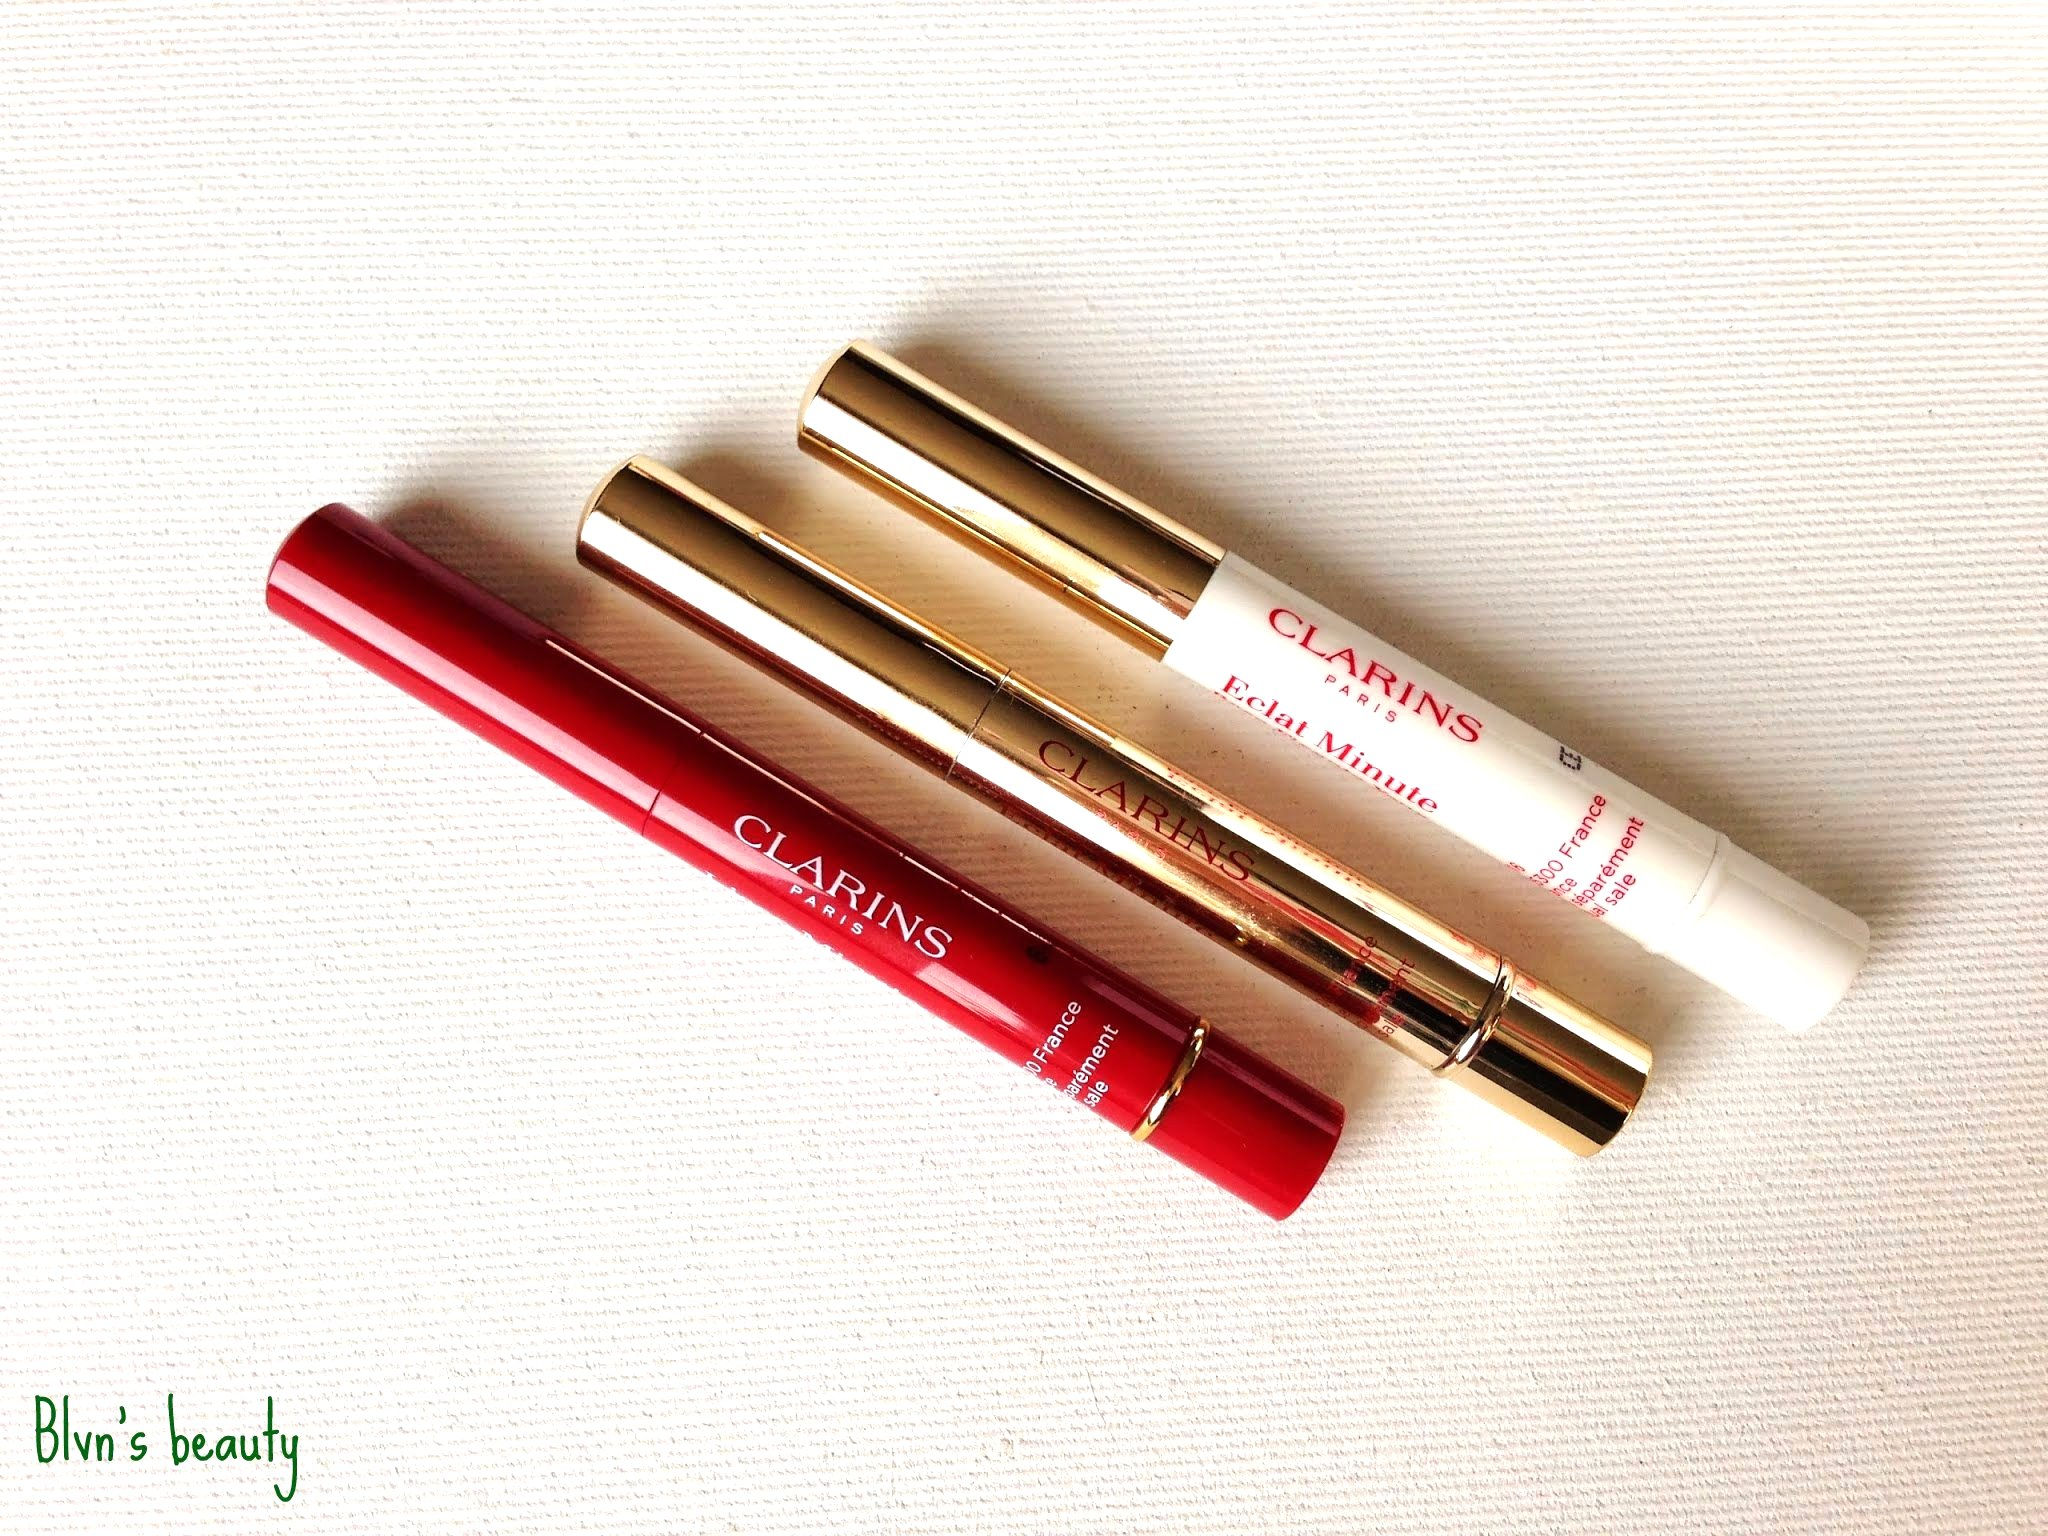 Clarins: Line Correcting Concentrate / Brush-On Perfector / Eye Perfecting Base